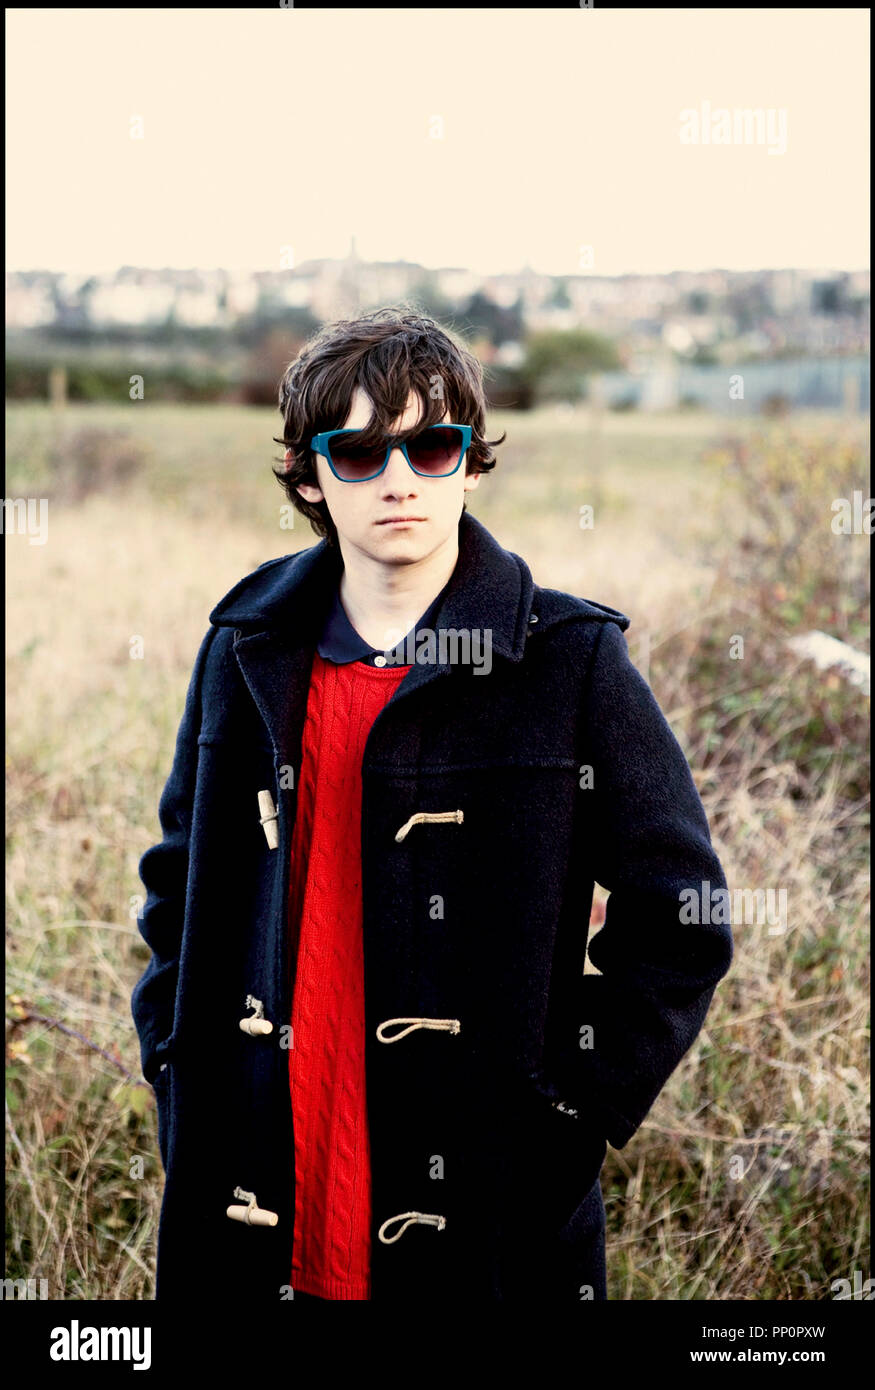 Prod DB © Film4 - Red Hour Films - Warp Films / DR submarino de Richard Ayoade 2010 GB/USA avec Craig Roberts adolescente, duffle coat d'après le roman de Joe Dunthorne Imagen De Stock